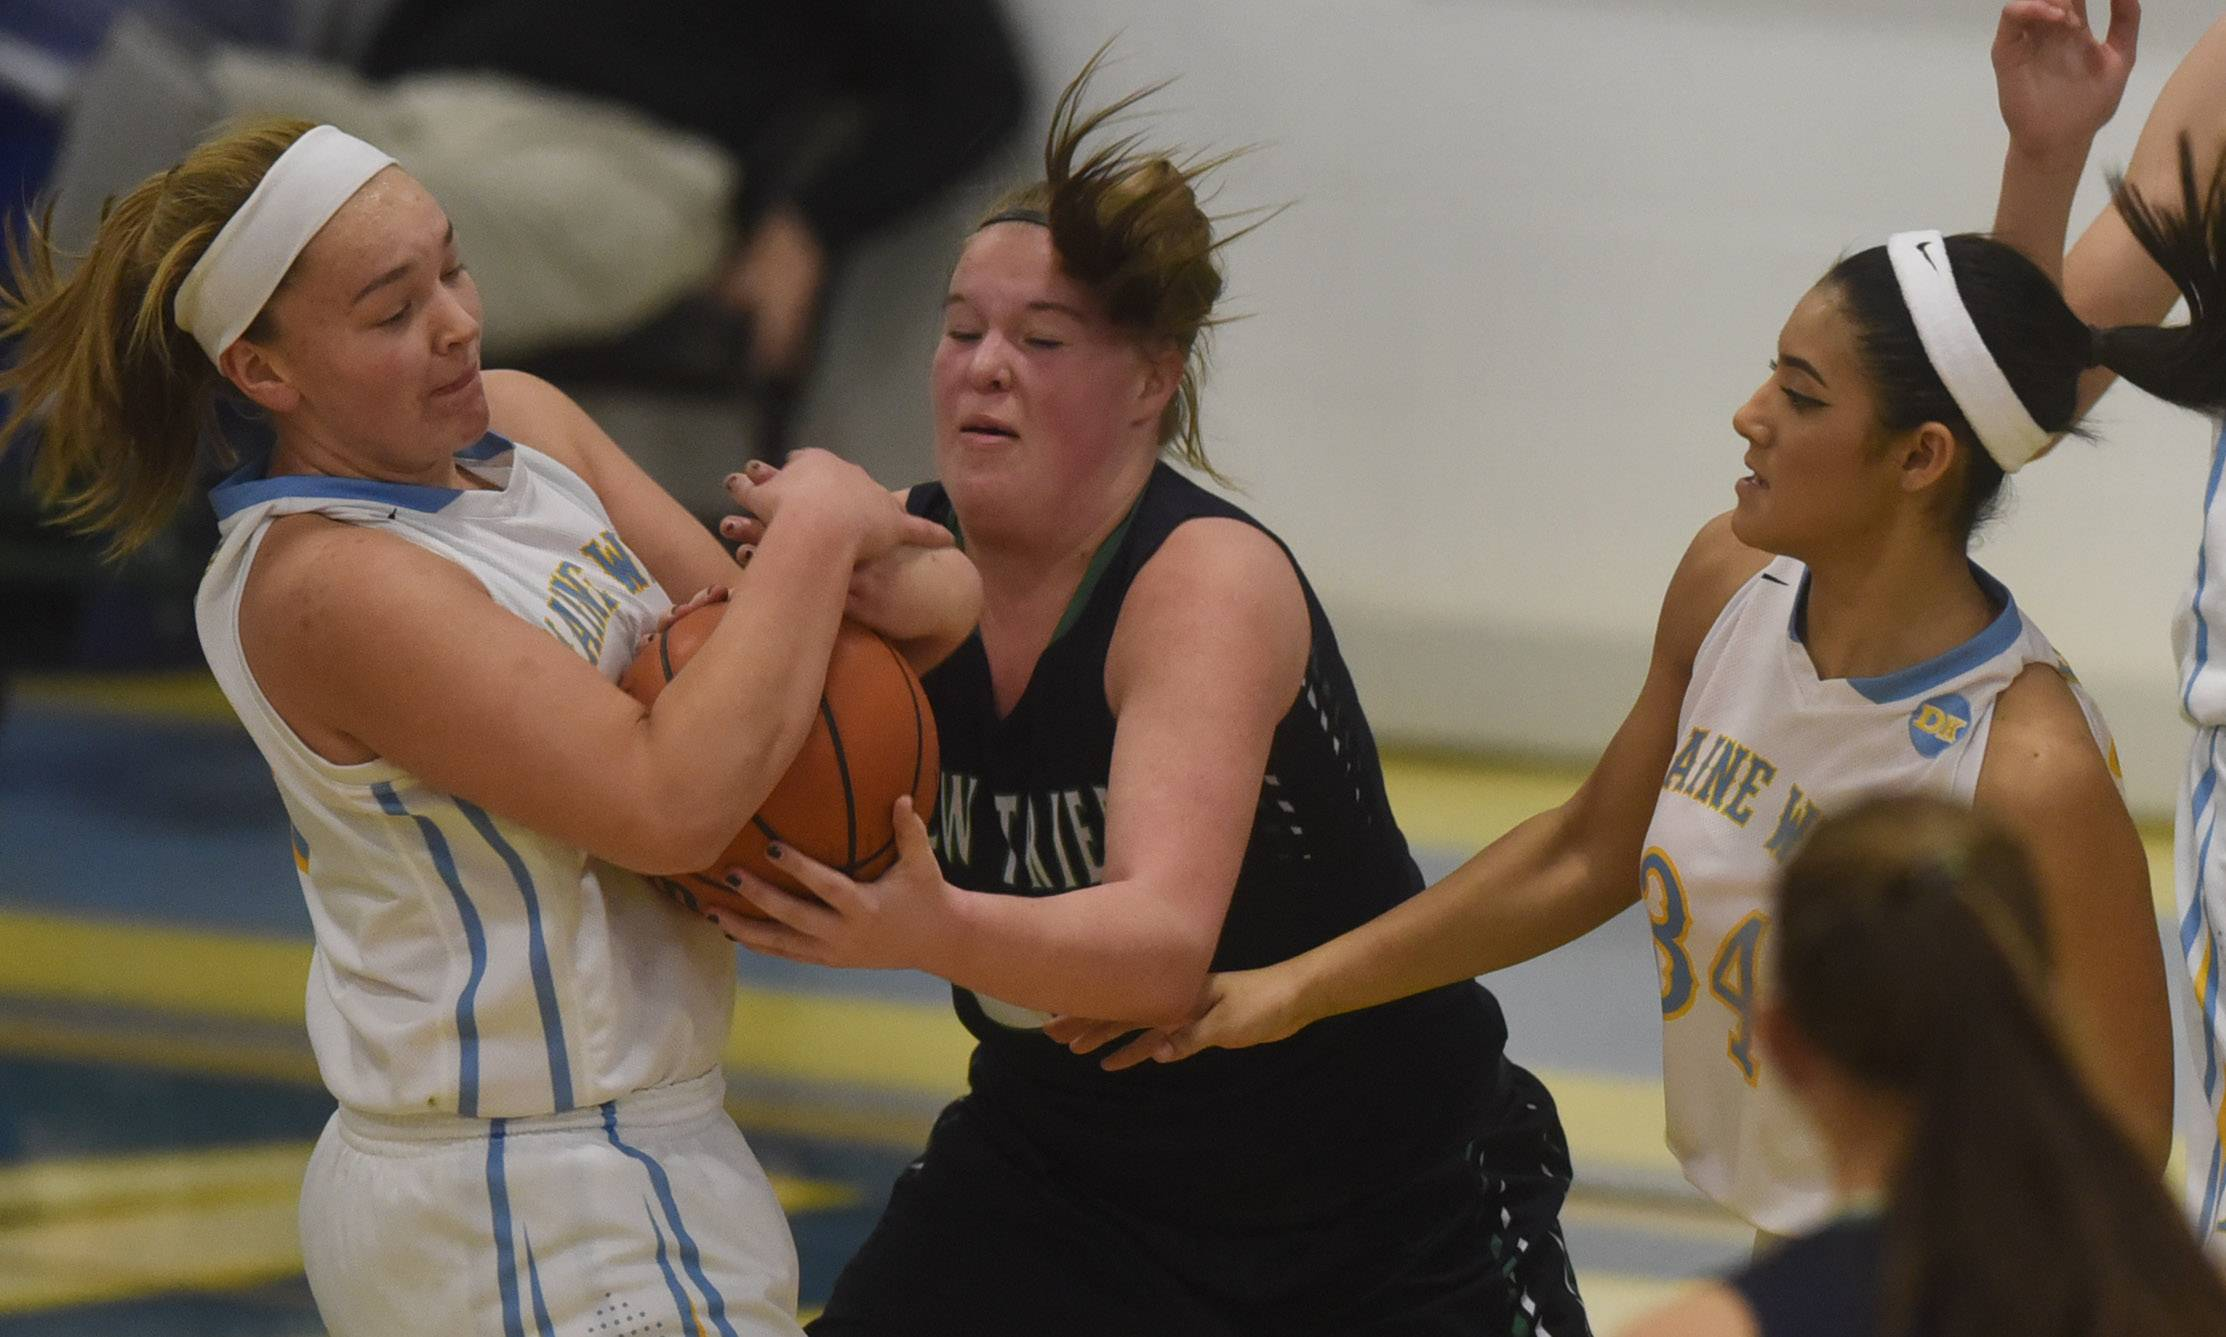 Maine West's Allison Pearson, left, takes the ball from New Trier's Jacqueline Vinson during Tuesday's game in Des Plaines.